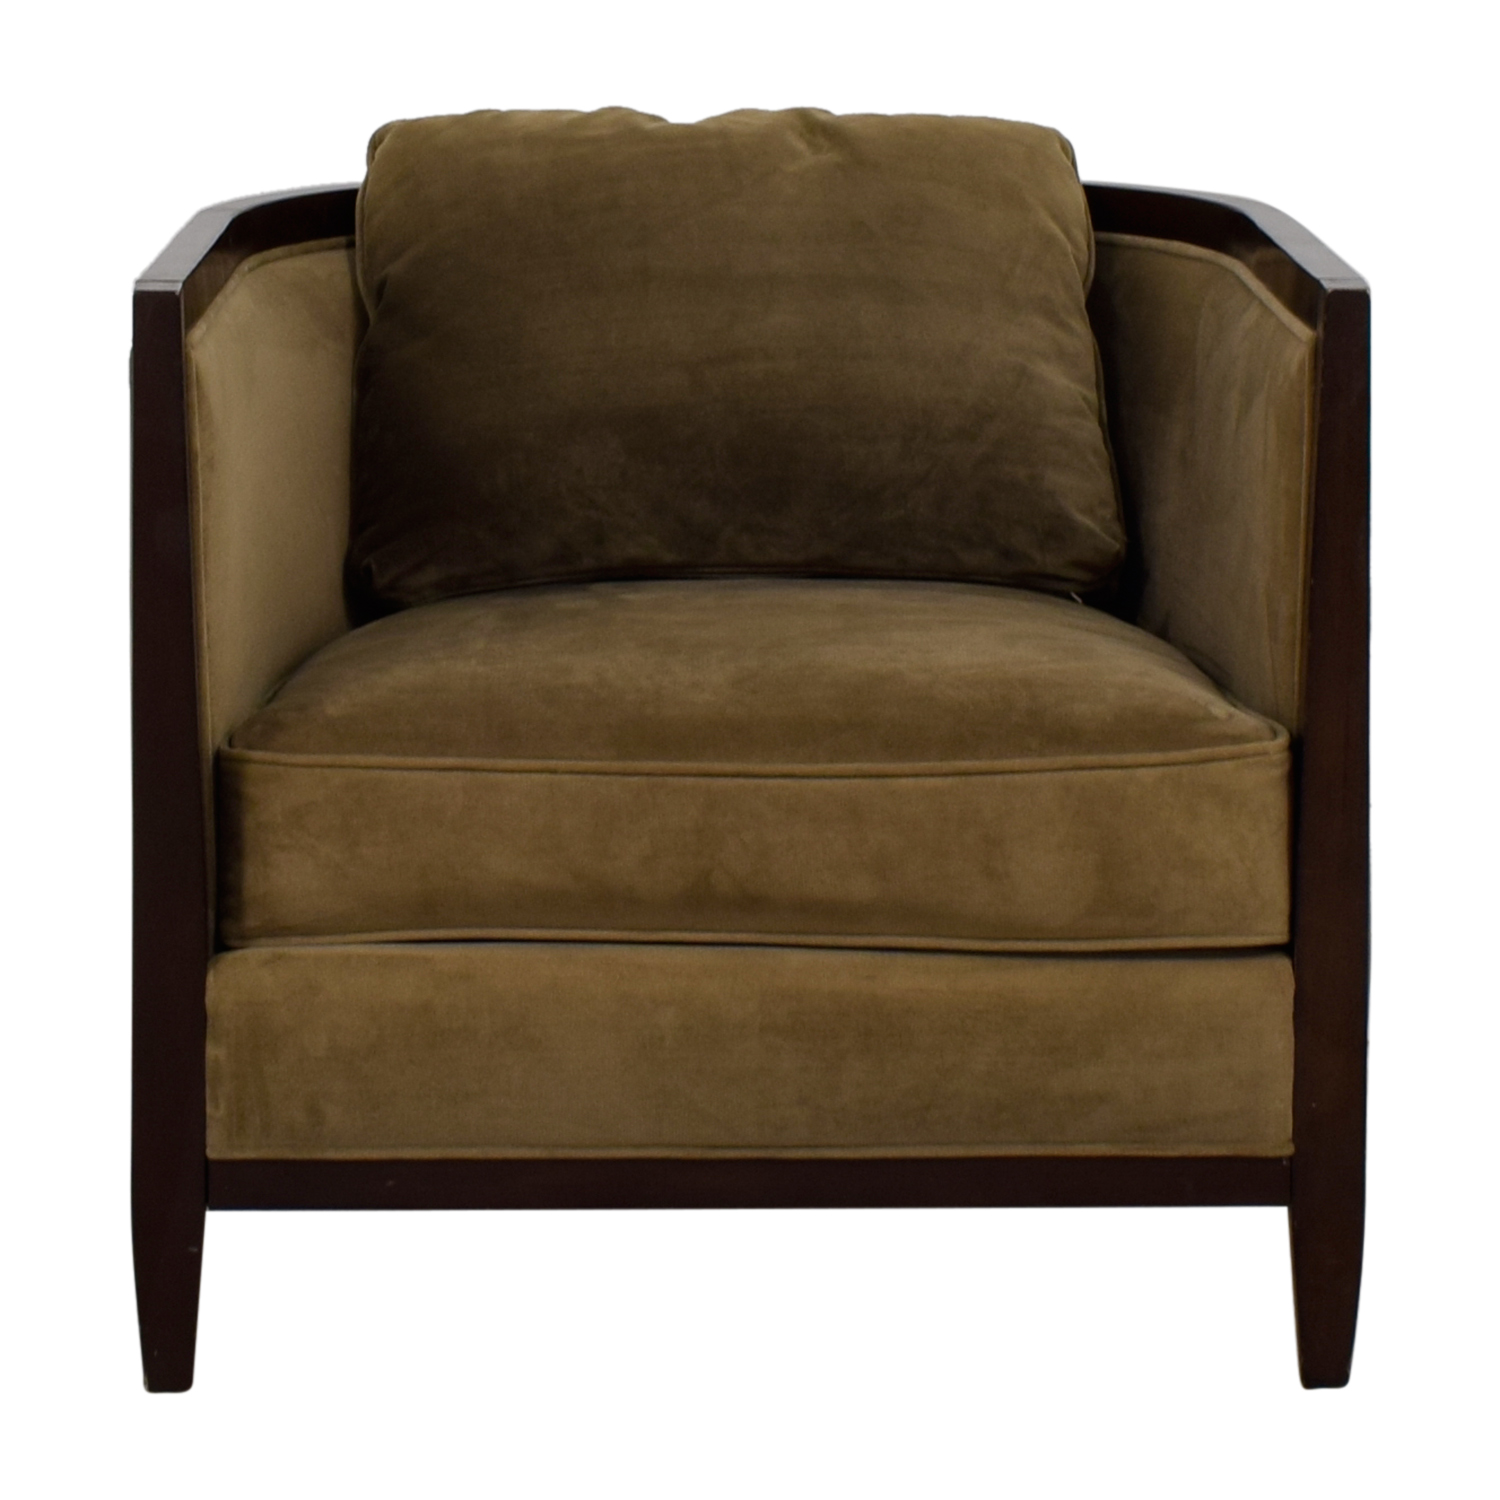 buy Bloomingdale's Beige Upholstered Wood Accent Chair Bloomingdale's Chairs